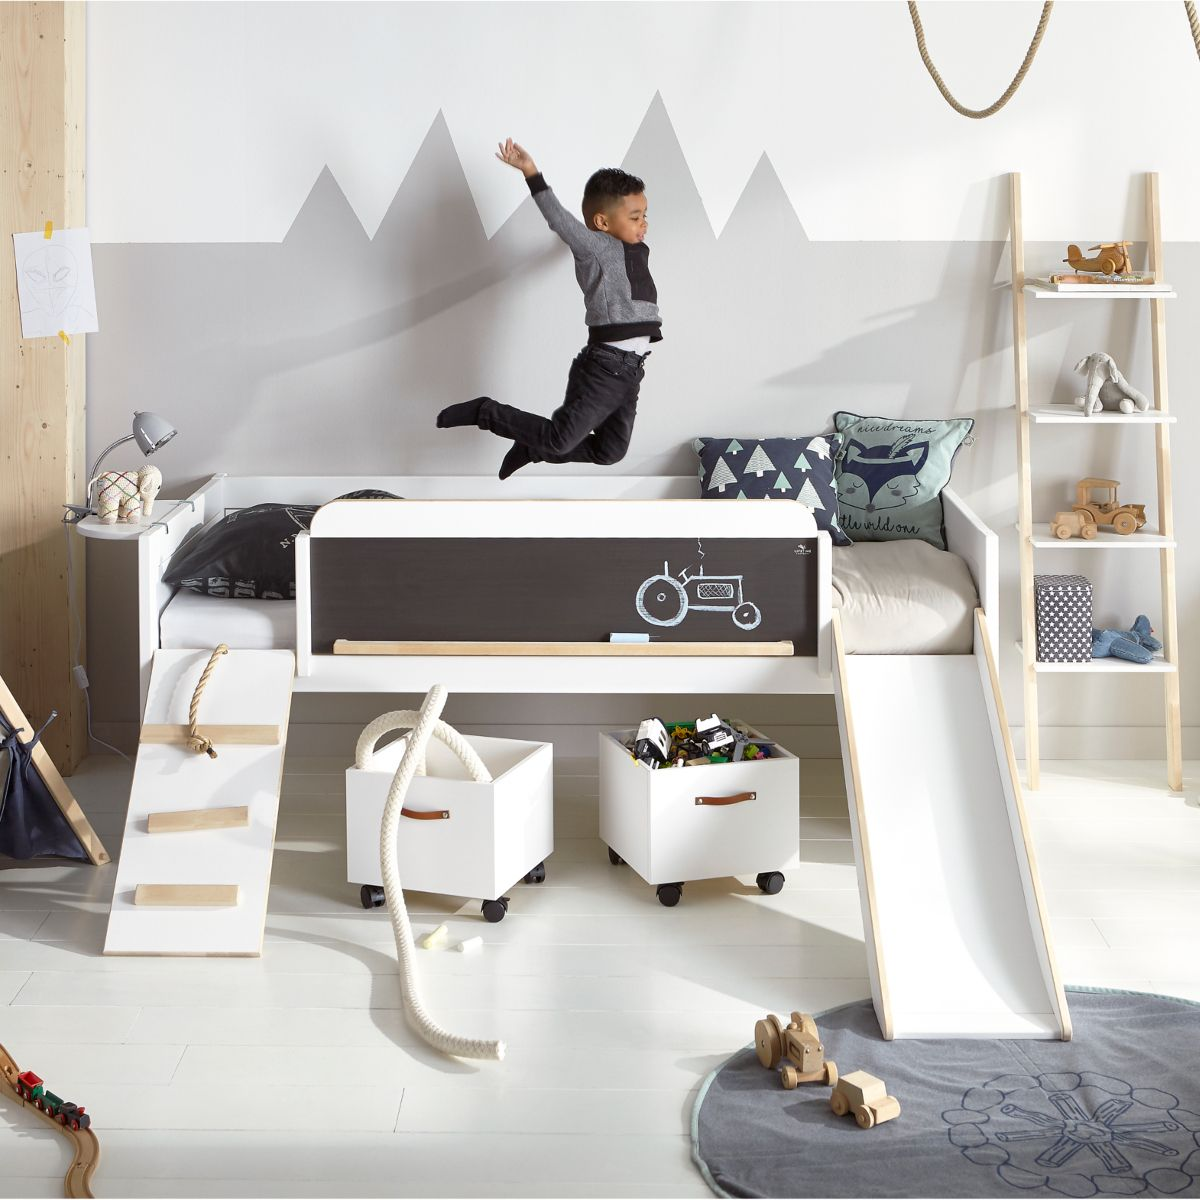 Lifetime Halbhohes Hochbett Play Learn Sleep Kiefer Mit Rutsche 90x200cm Unique Kids Beds Cool Beds For Kids Kids Bed With Slide